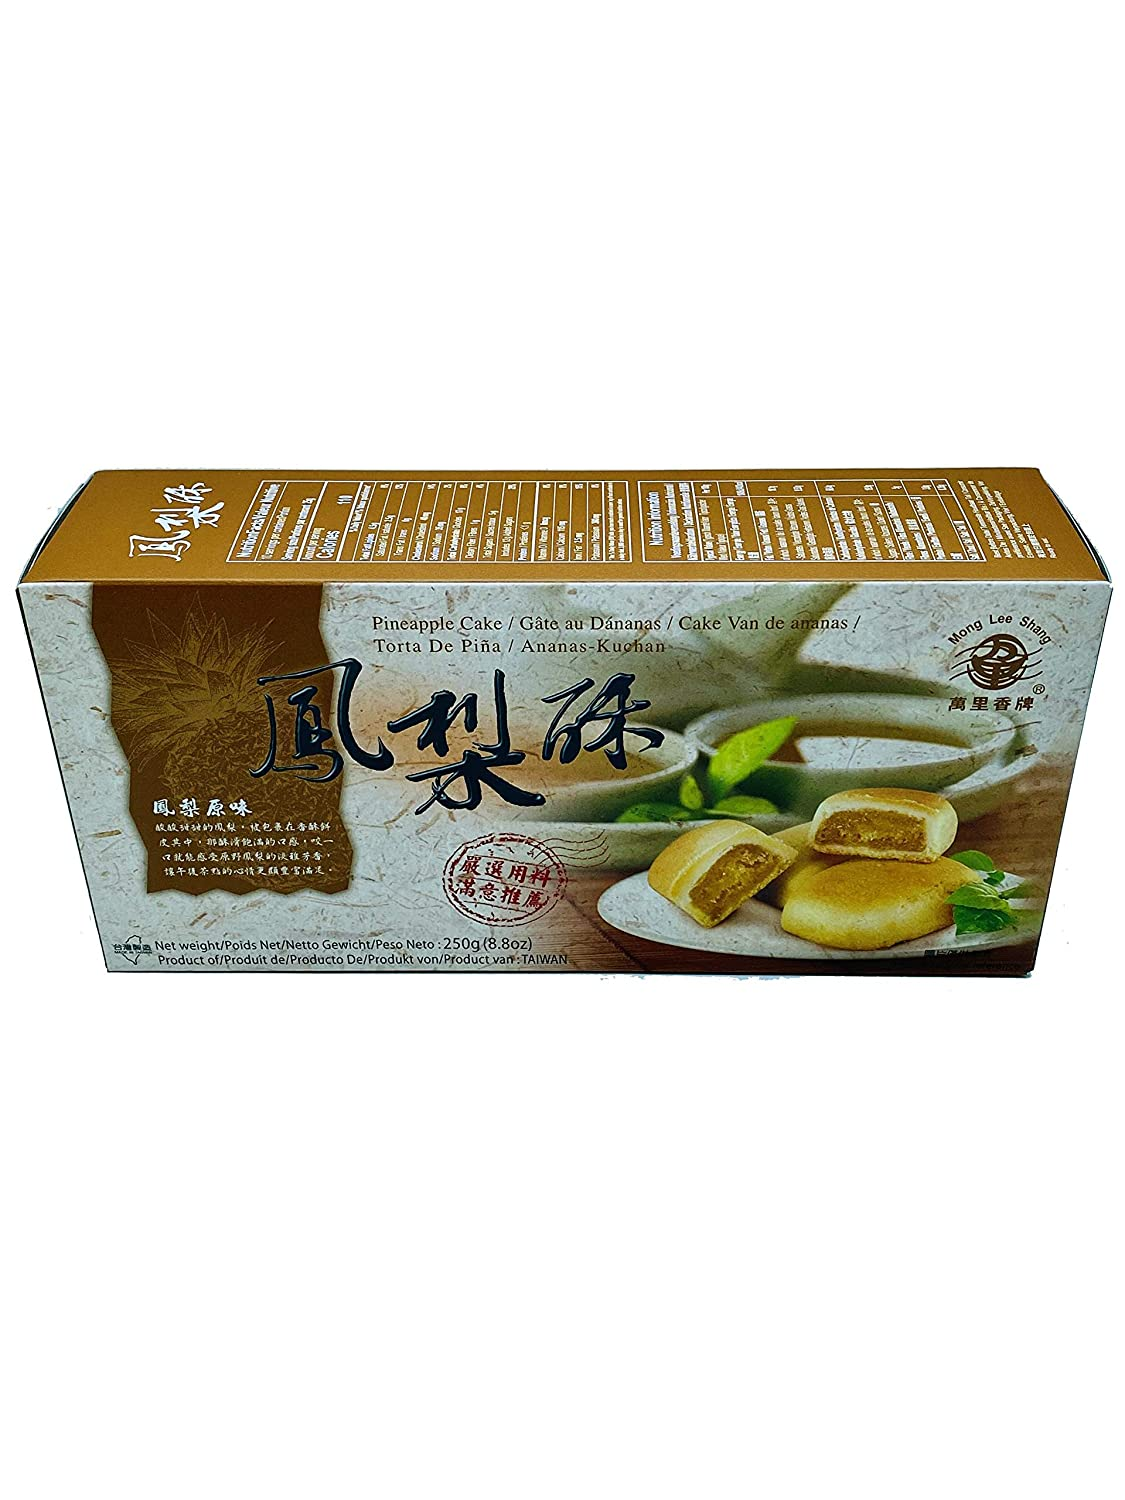 Mong Lee Shang Traditional Taiwanese Pineapple Cake 8.8 Oz 1 Pack (10p)